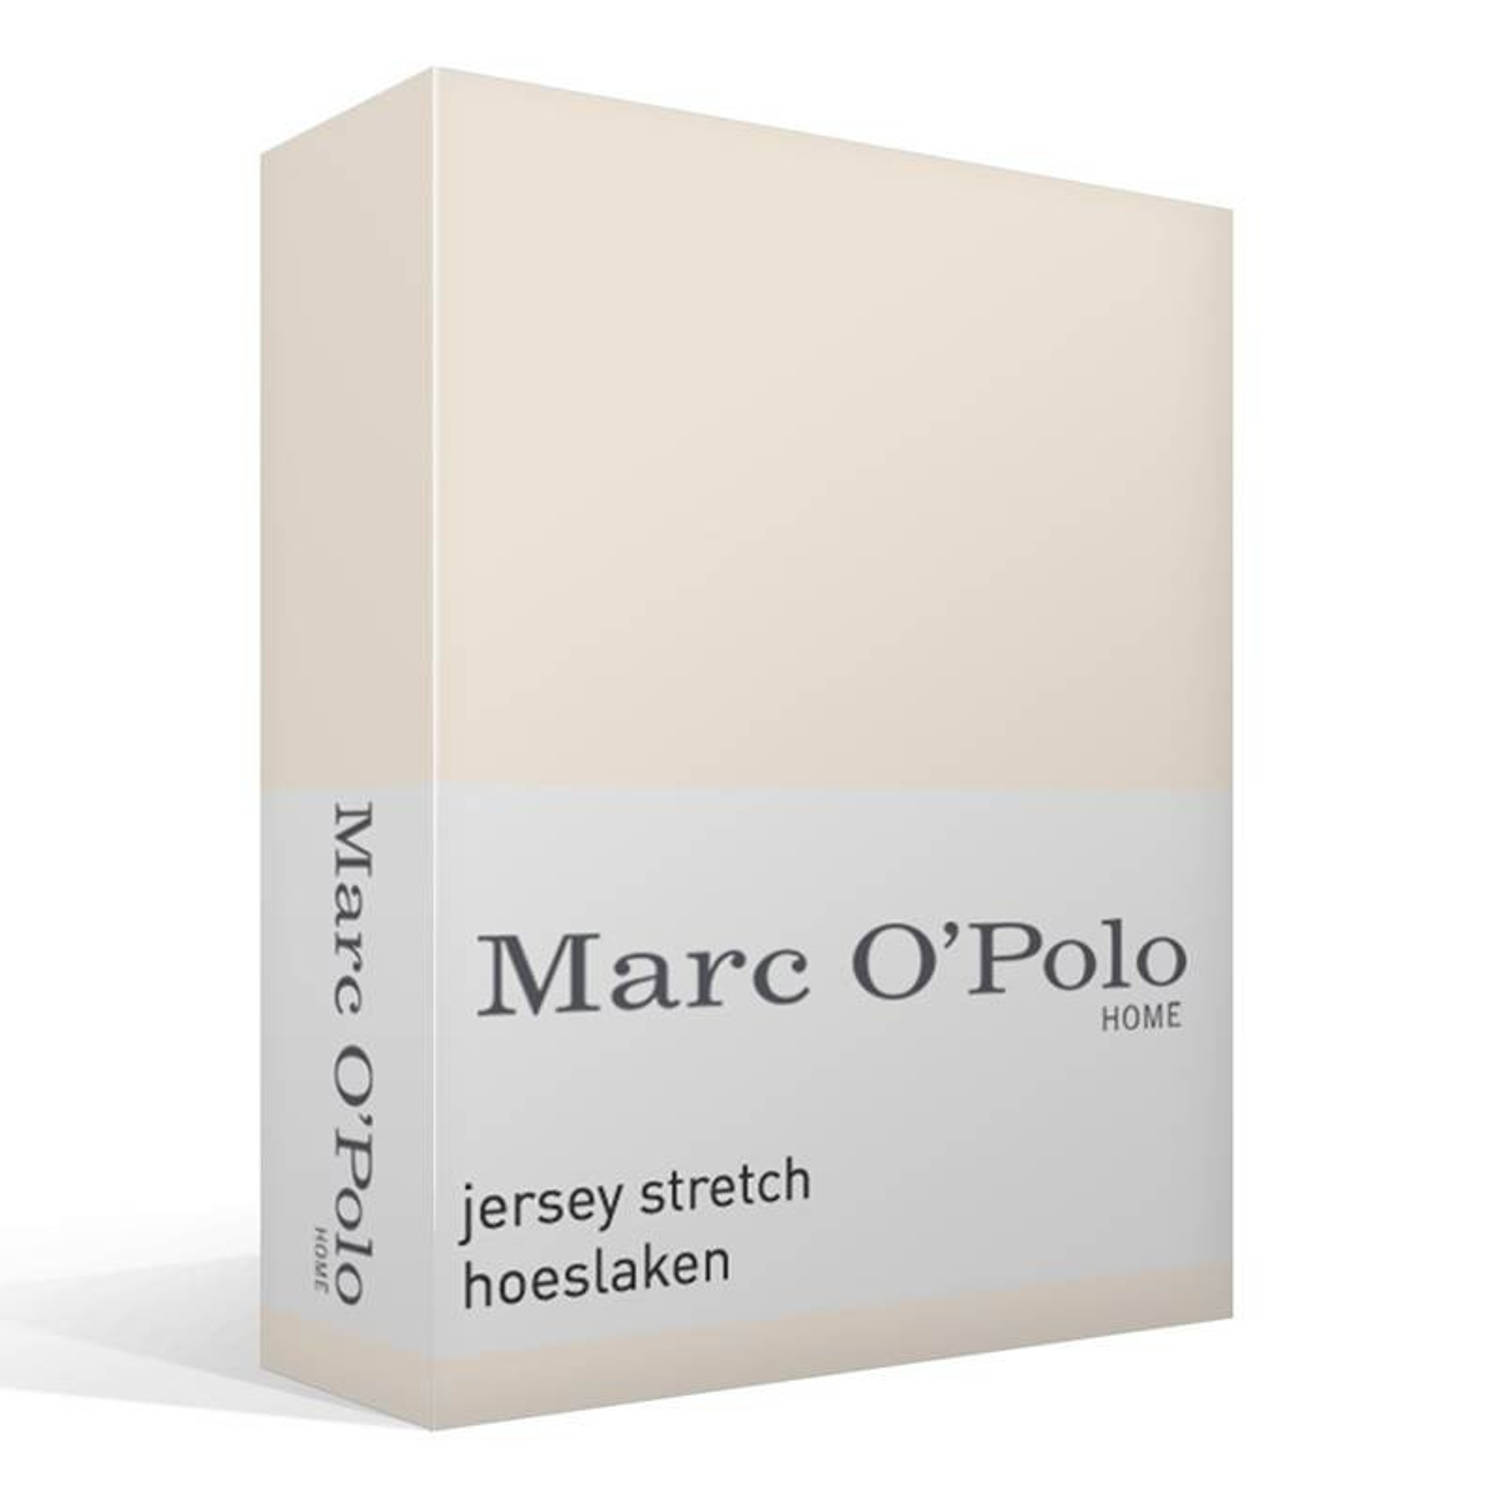 Marc O'Polo Marc O'Polo Jersey stretch hoeslaken - 2-persoons (140/160x200/220 cm)